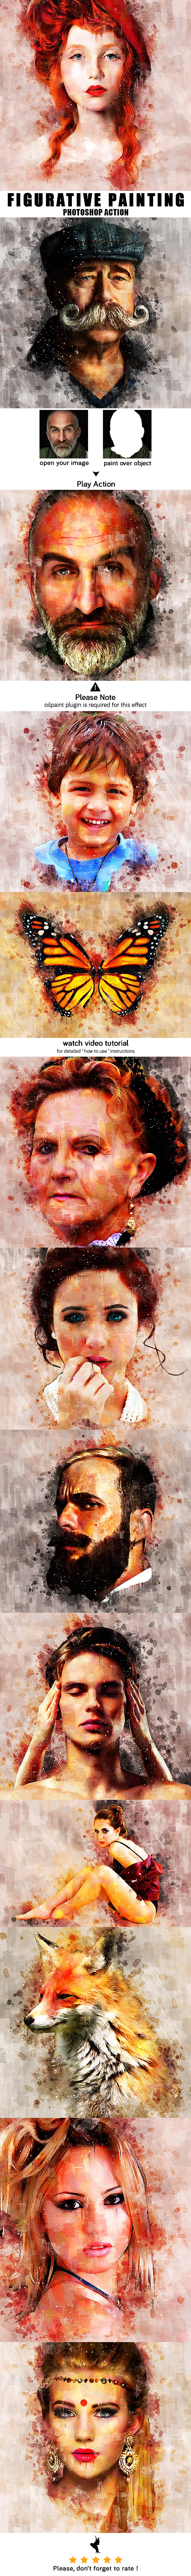 Figurative Painting - Photoshop Action - Photo Effects Actions